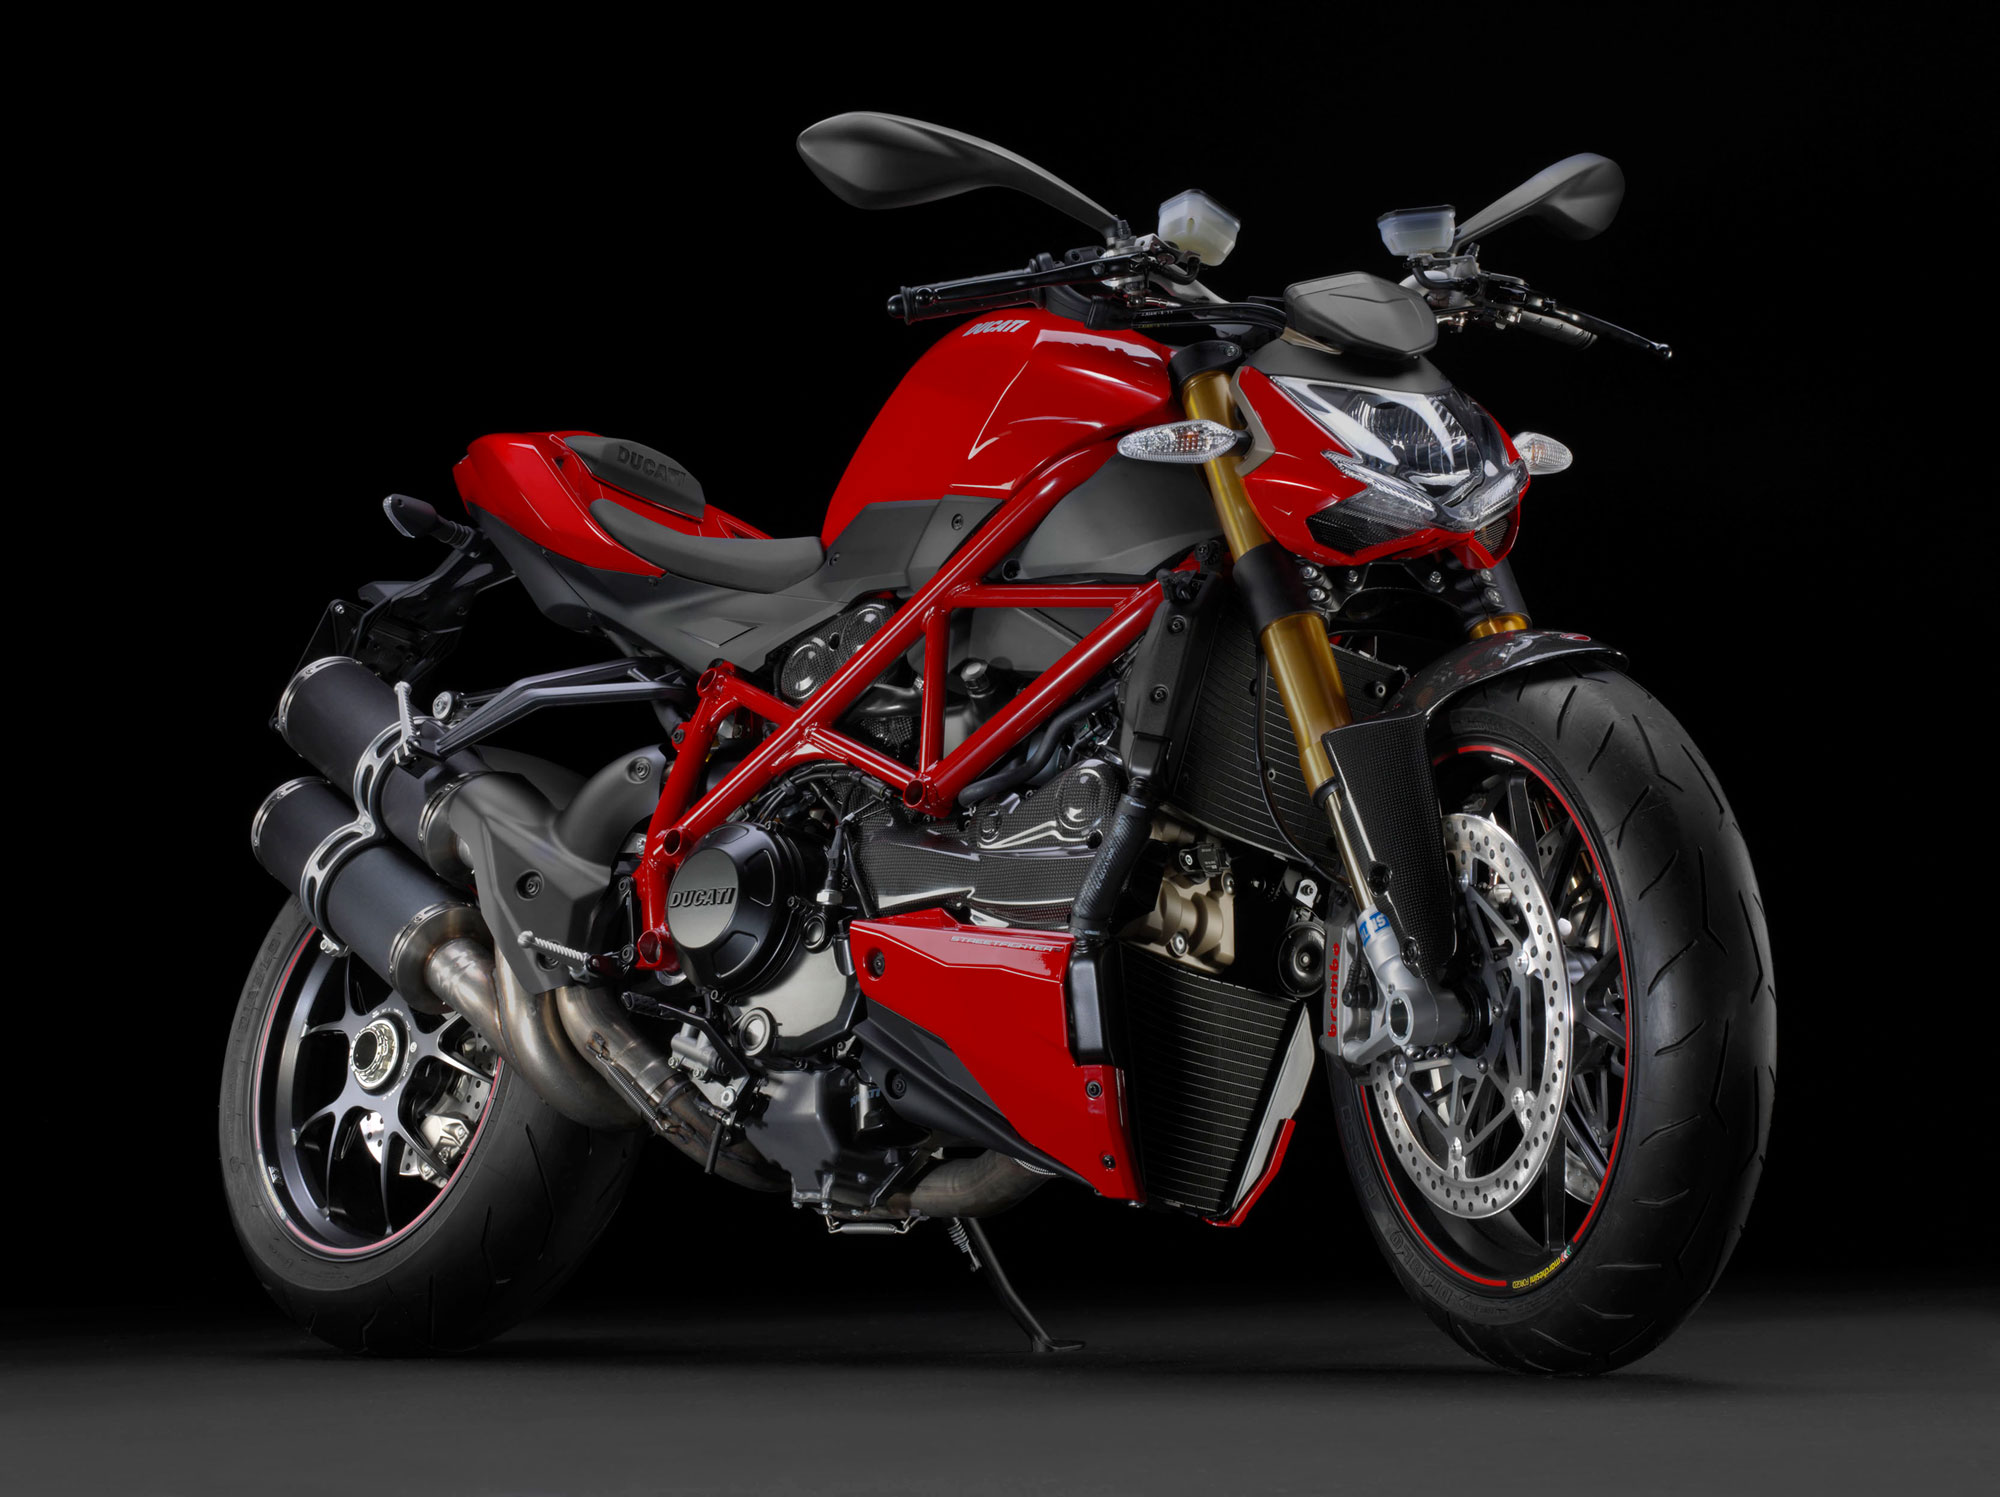 New Ducati Streetfighter S 2019 Price in Pakistan - Specs & Features